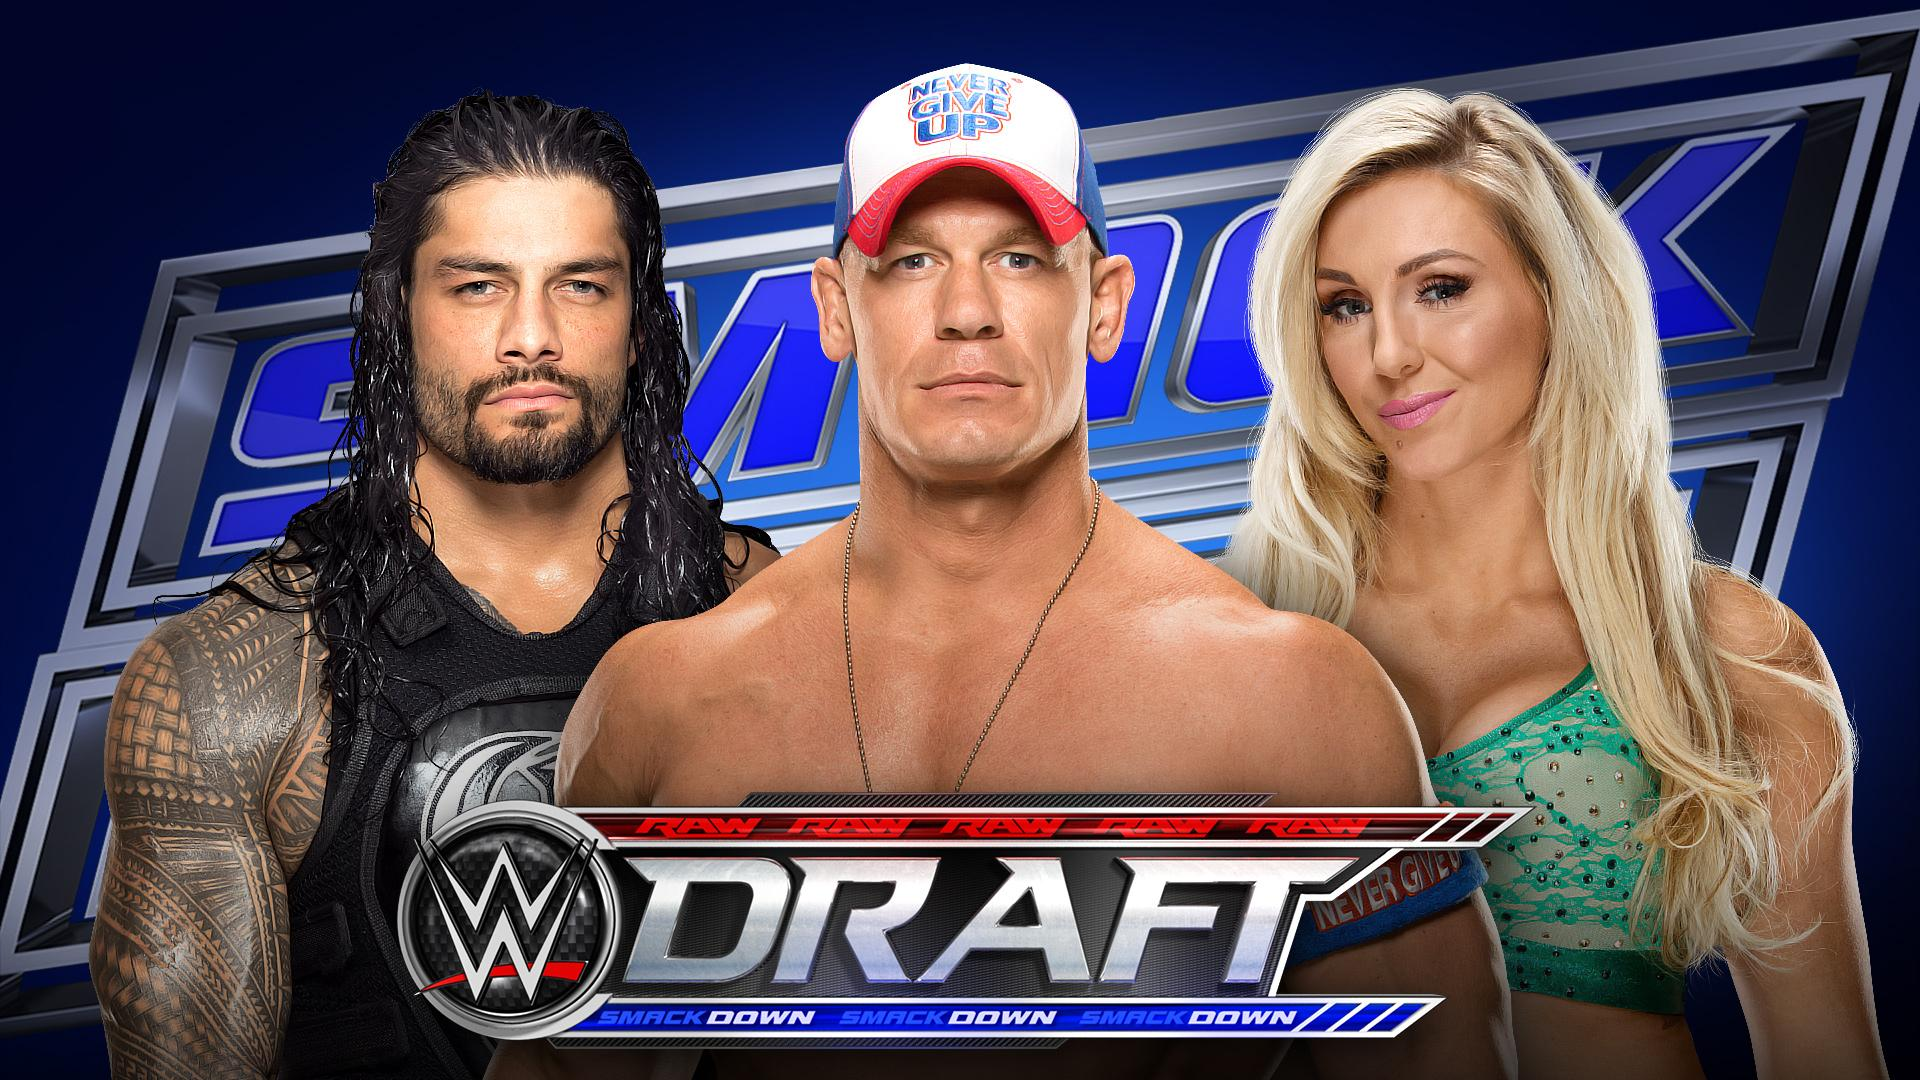 WWE Reveals Official Draft Day